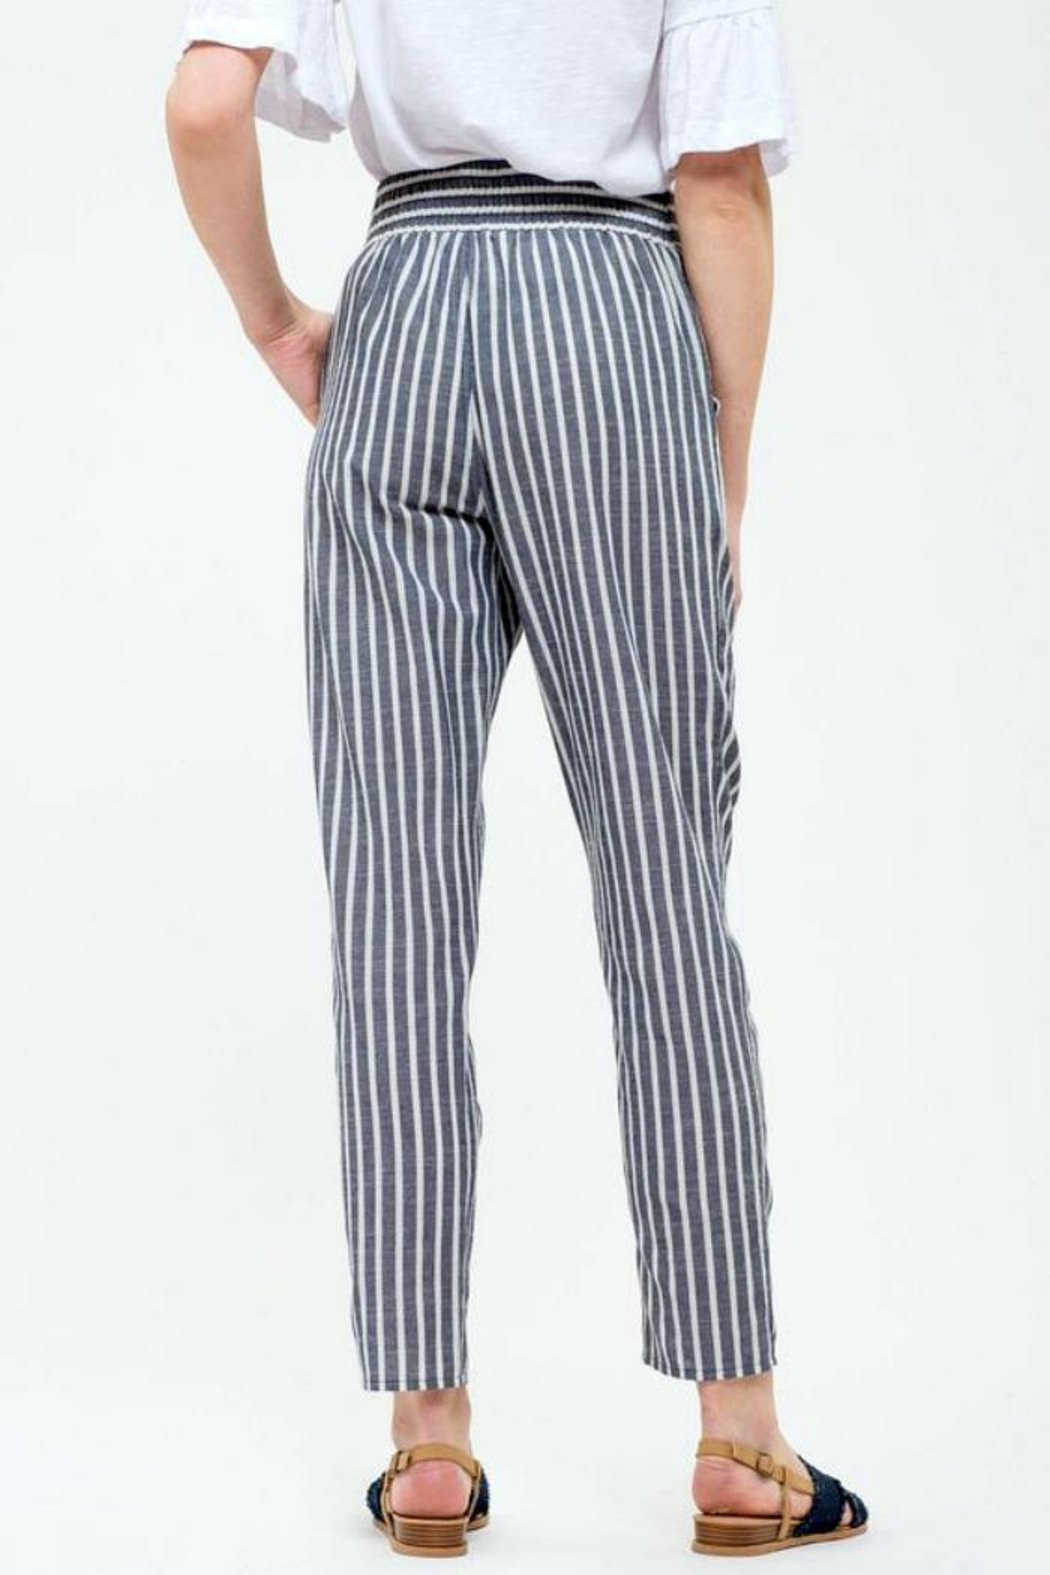 Blu Pepper Tie Striped Pants - Back Cropped Image